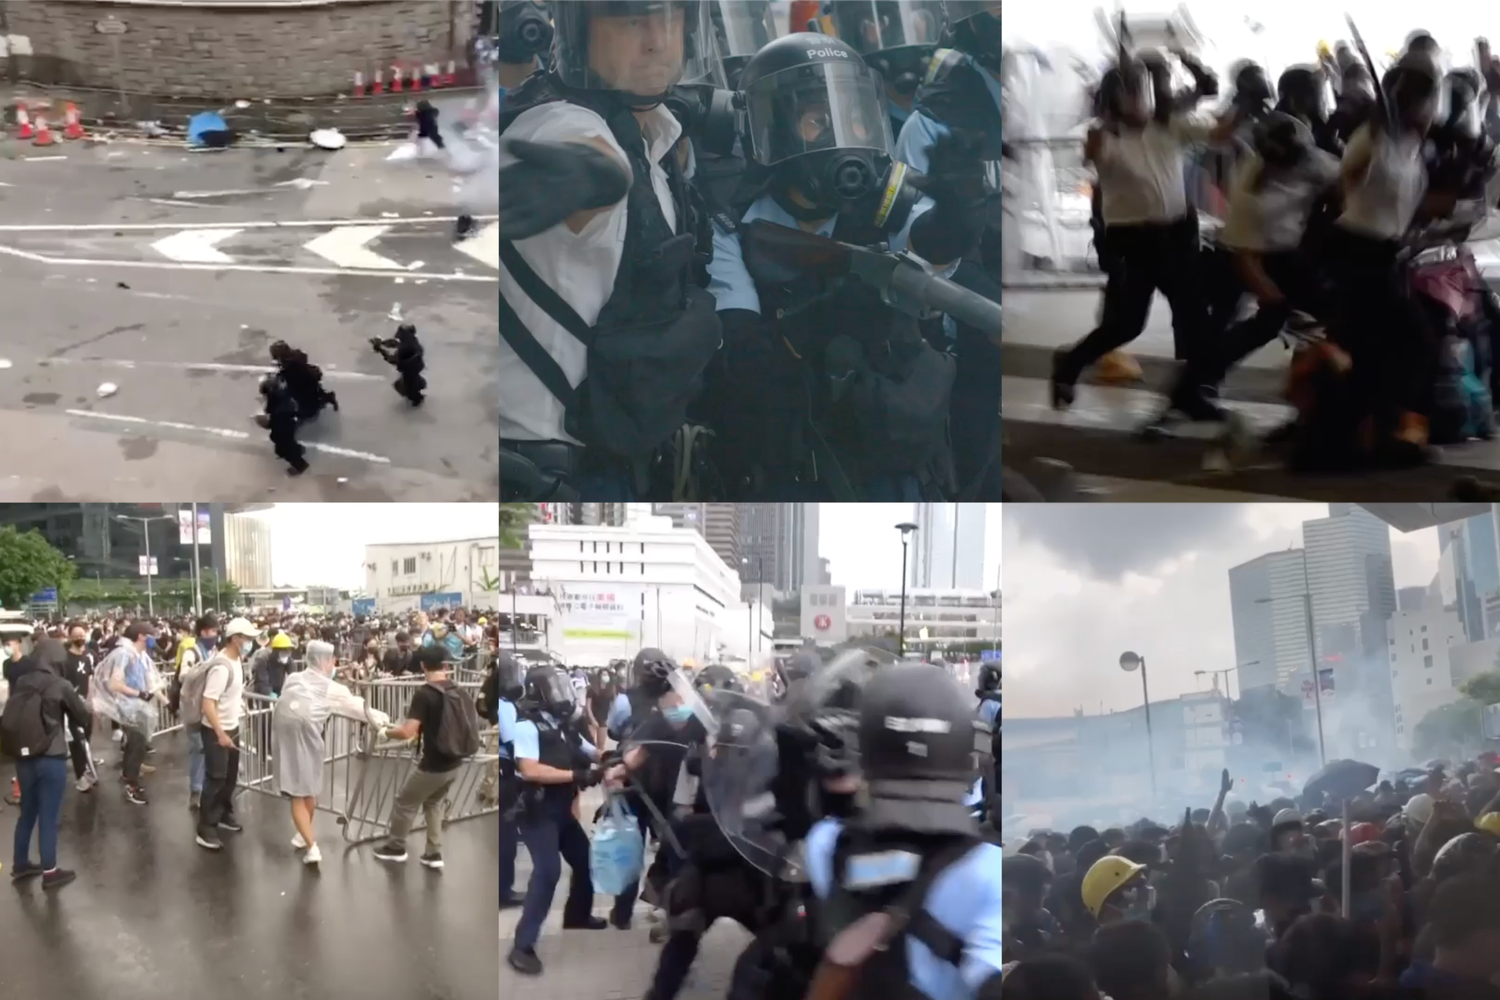 Did Hong Kong Police Abuse Protesters? What Videos Show.